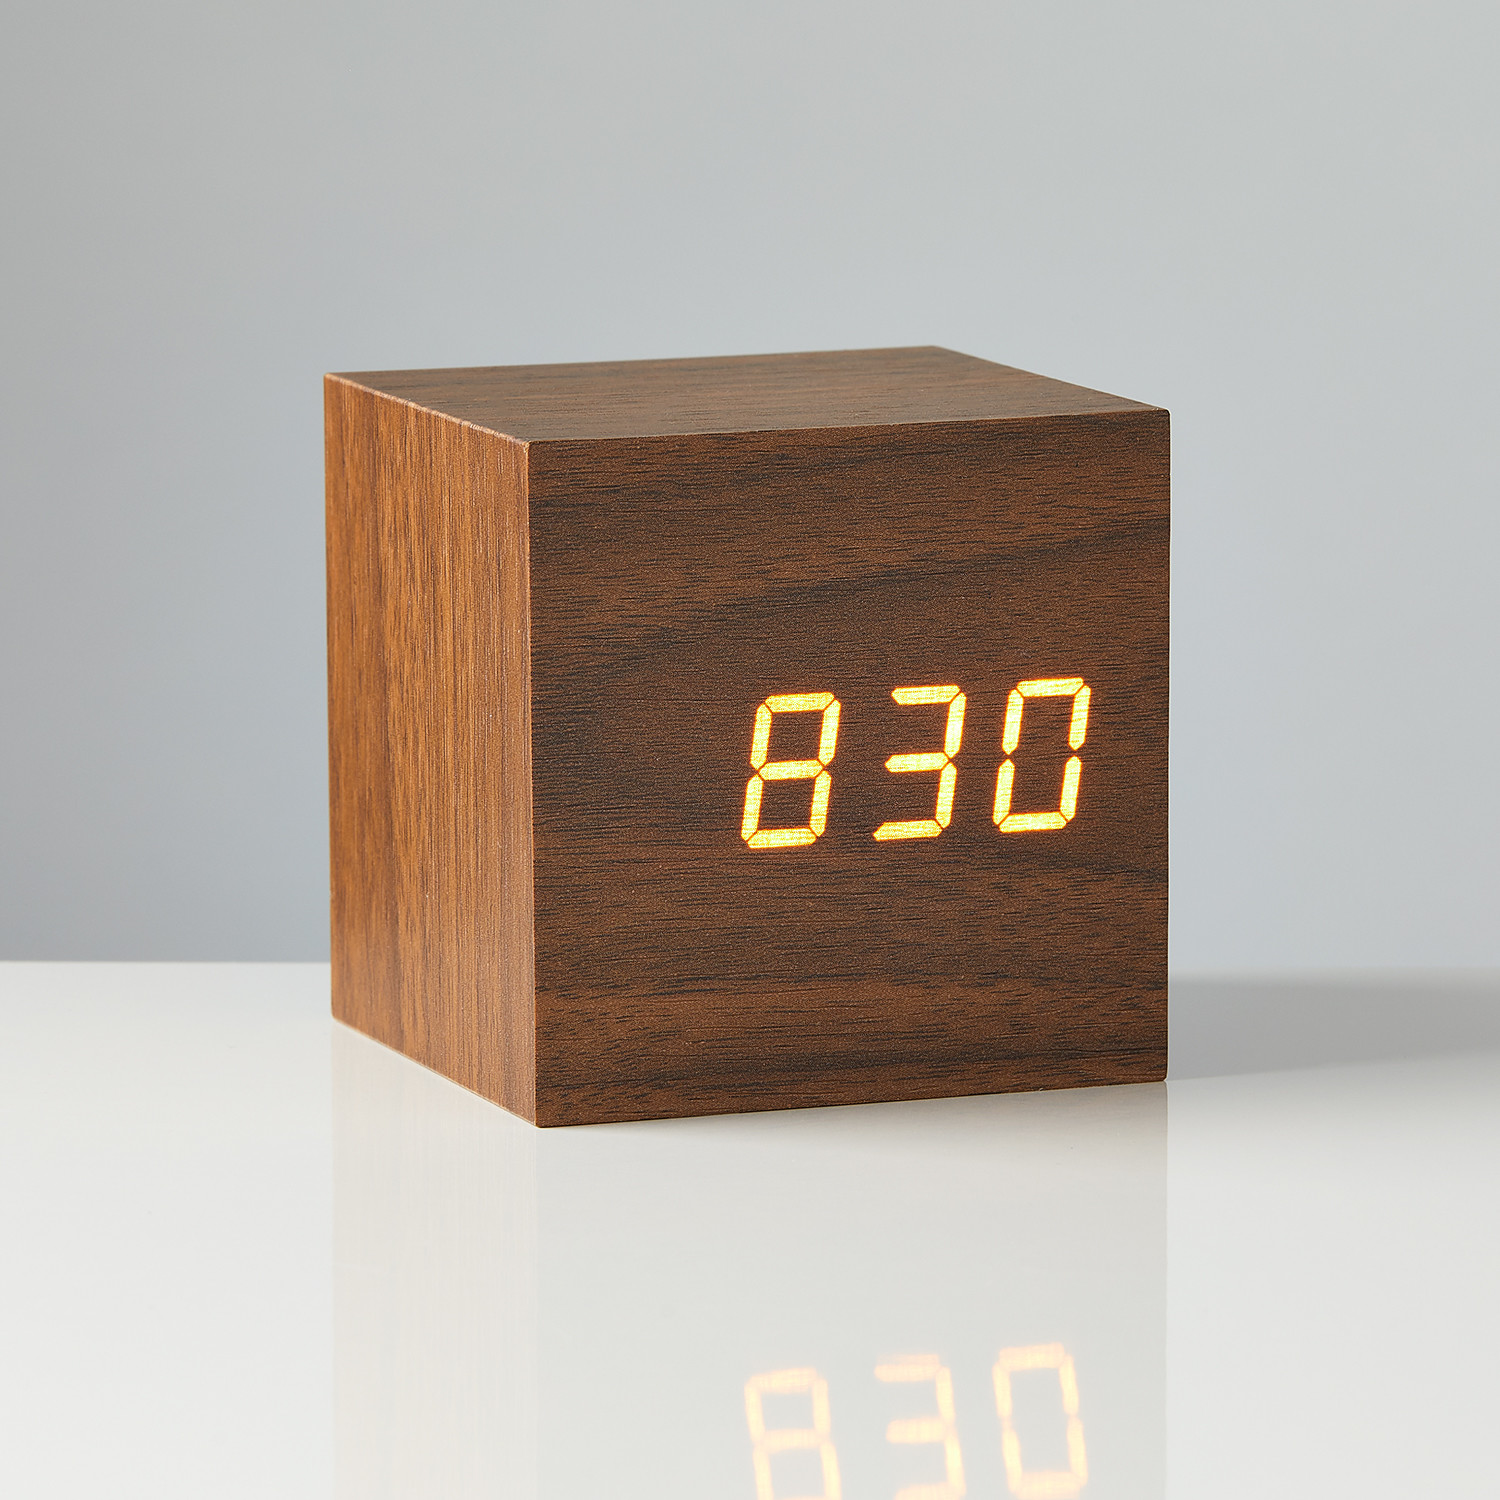 Melting Clock,Block-Type Twisted Clock,Melted Clock for Decorative Home Of W7N7